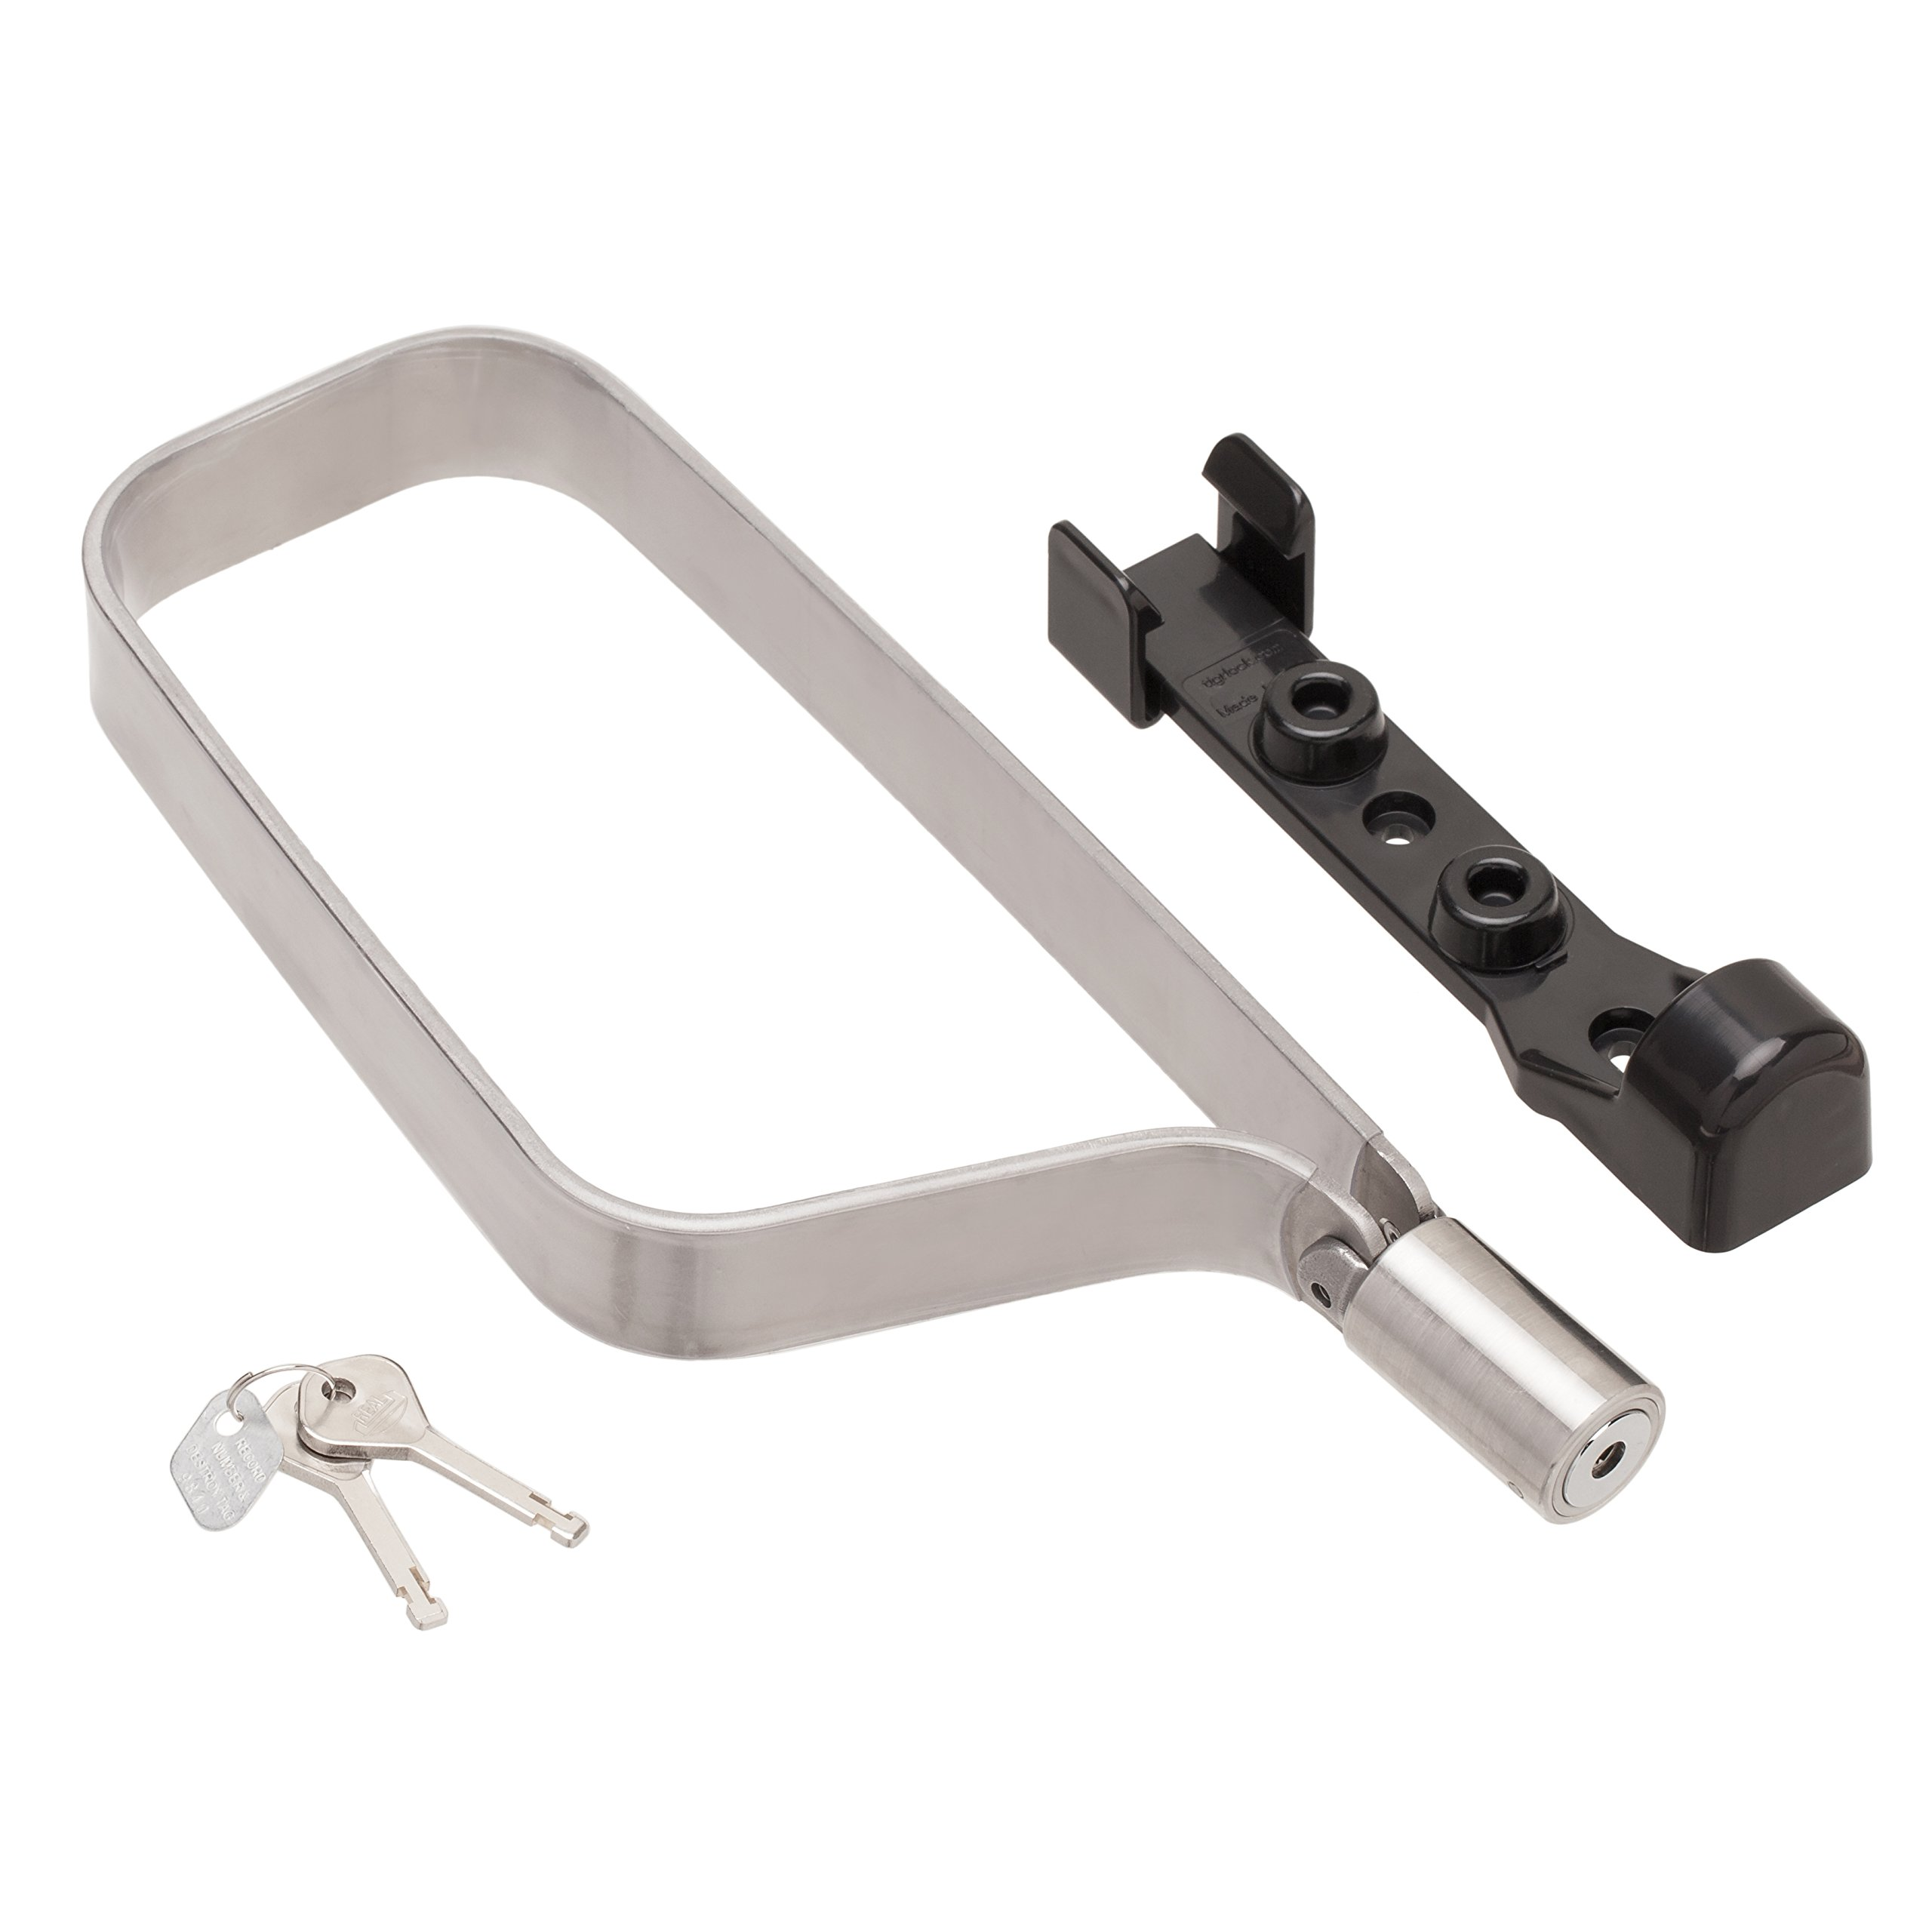 TIGR mini+ Lightweight Titanium Bicycle U-Lock & Mounting Clip by TIGR (Image #1)